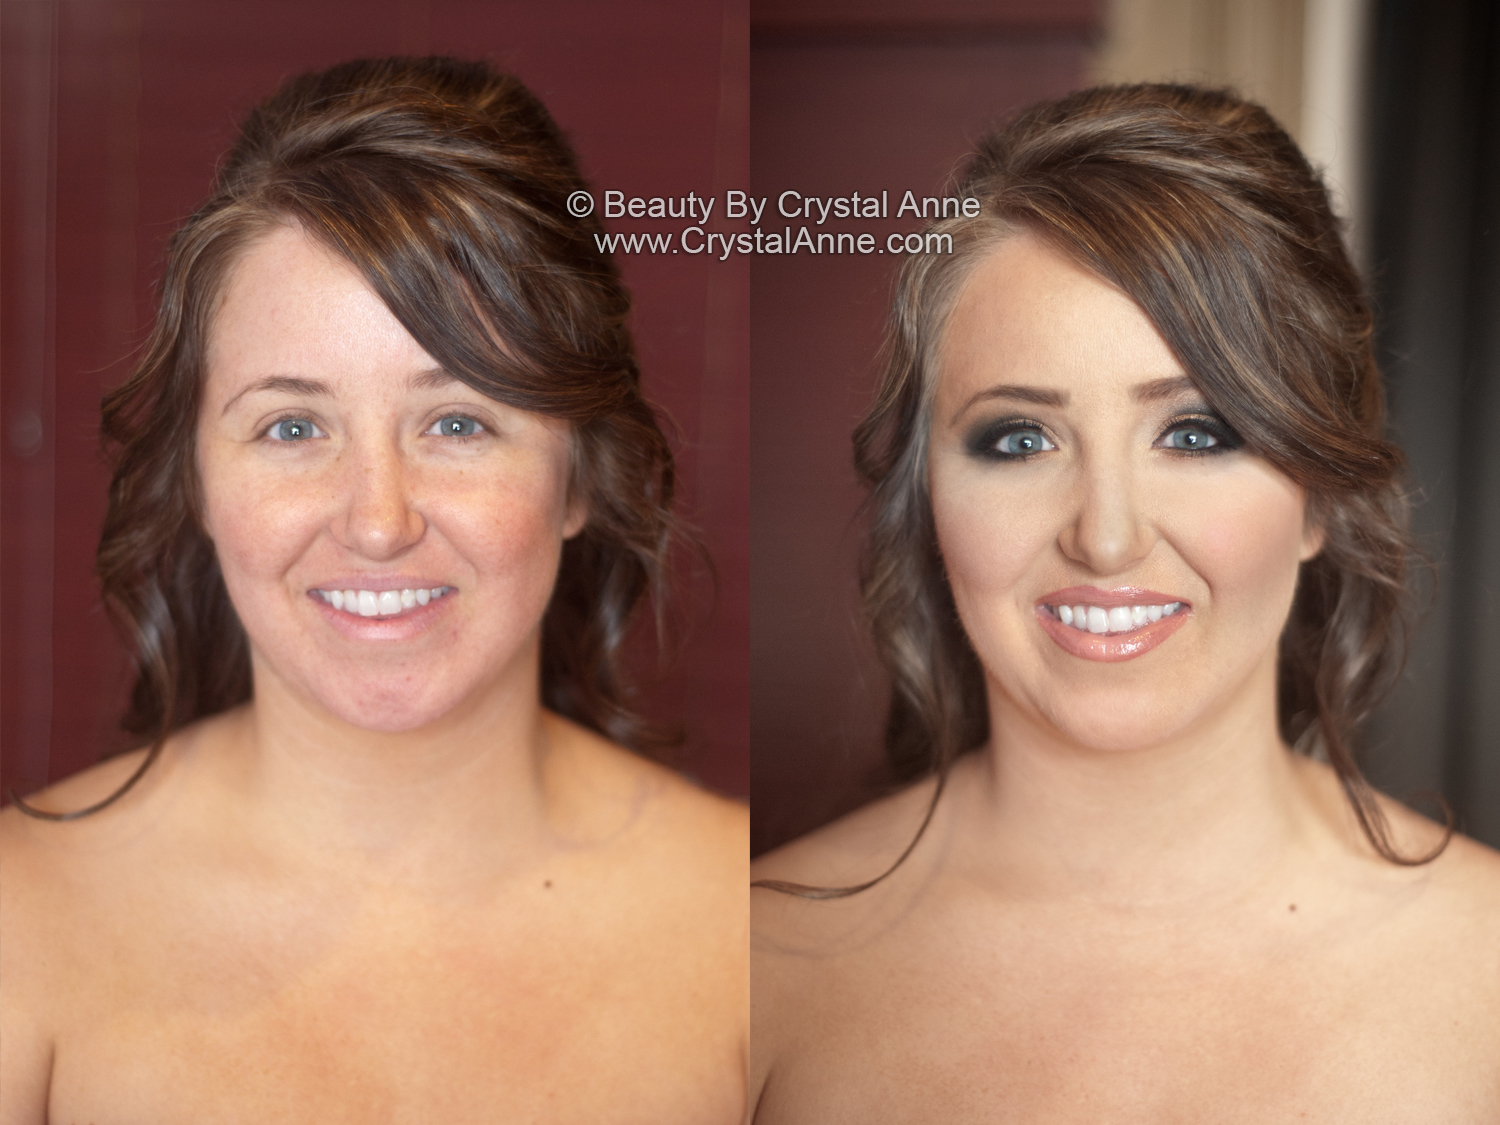 hair and airbrush makeup for bridesmaids- houston, tx - houston